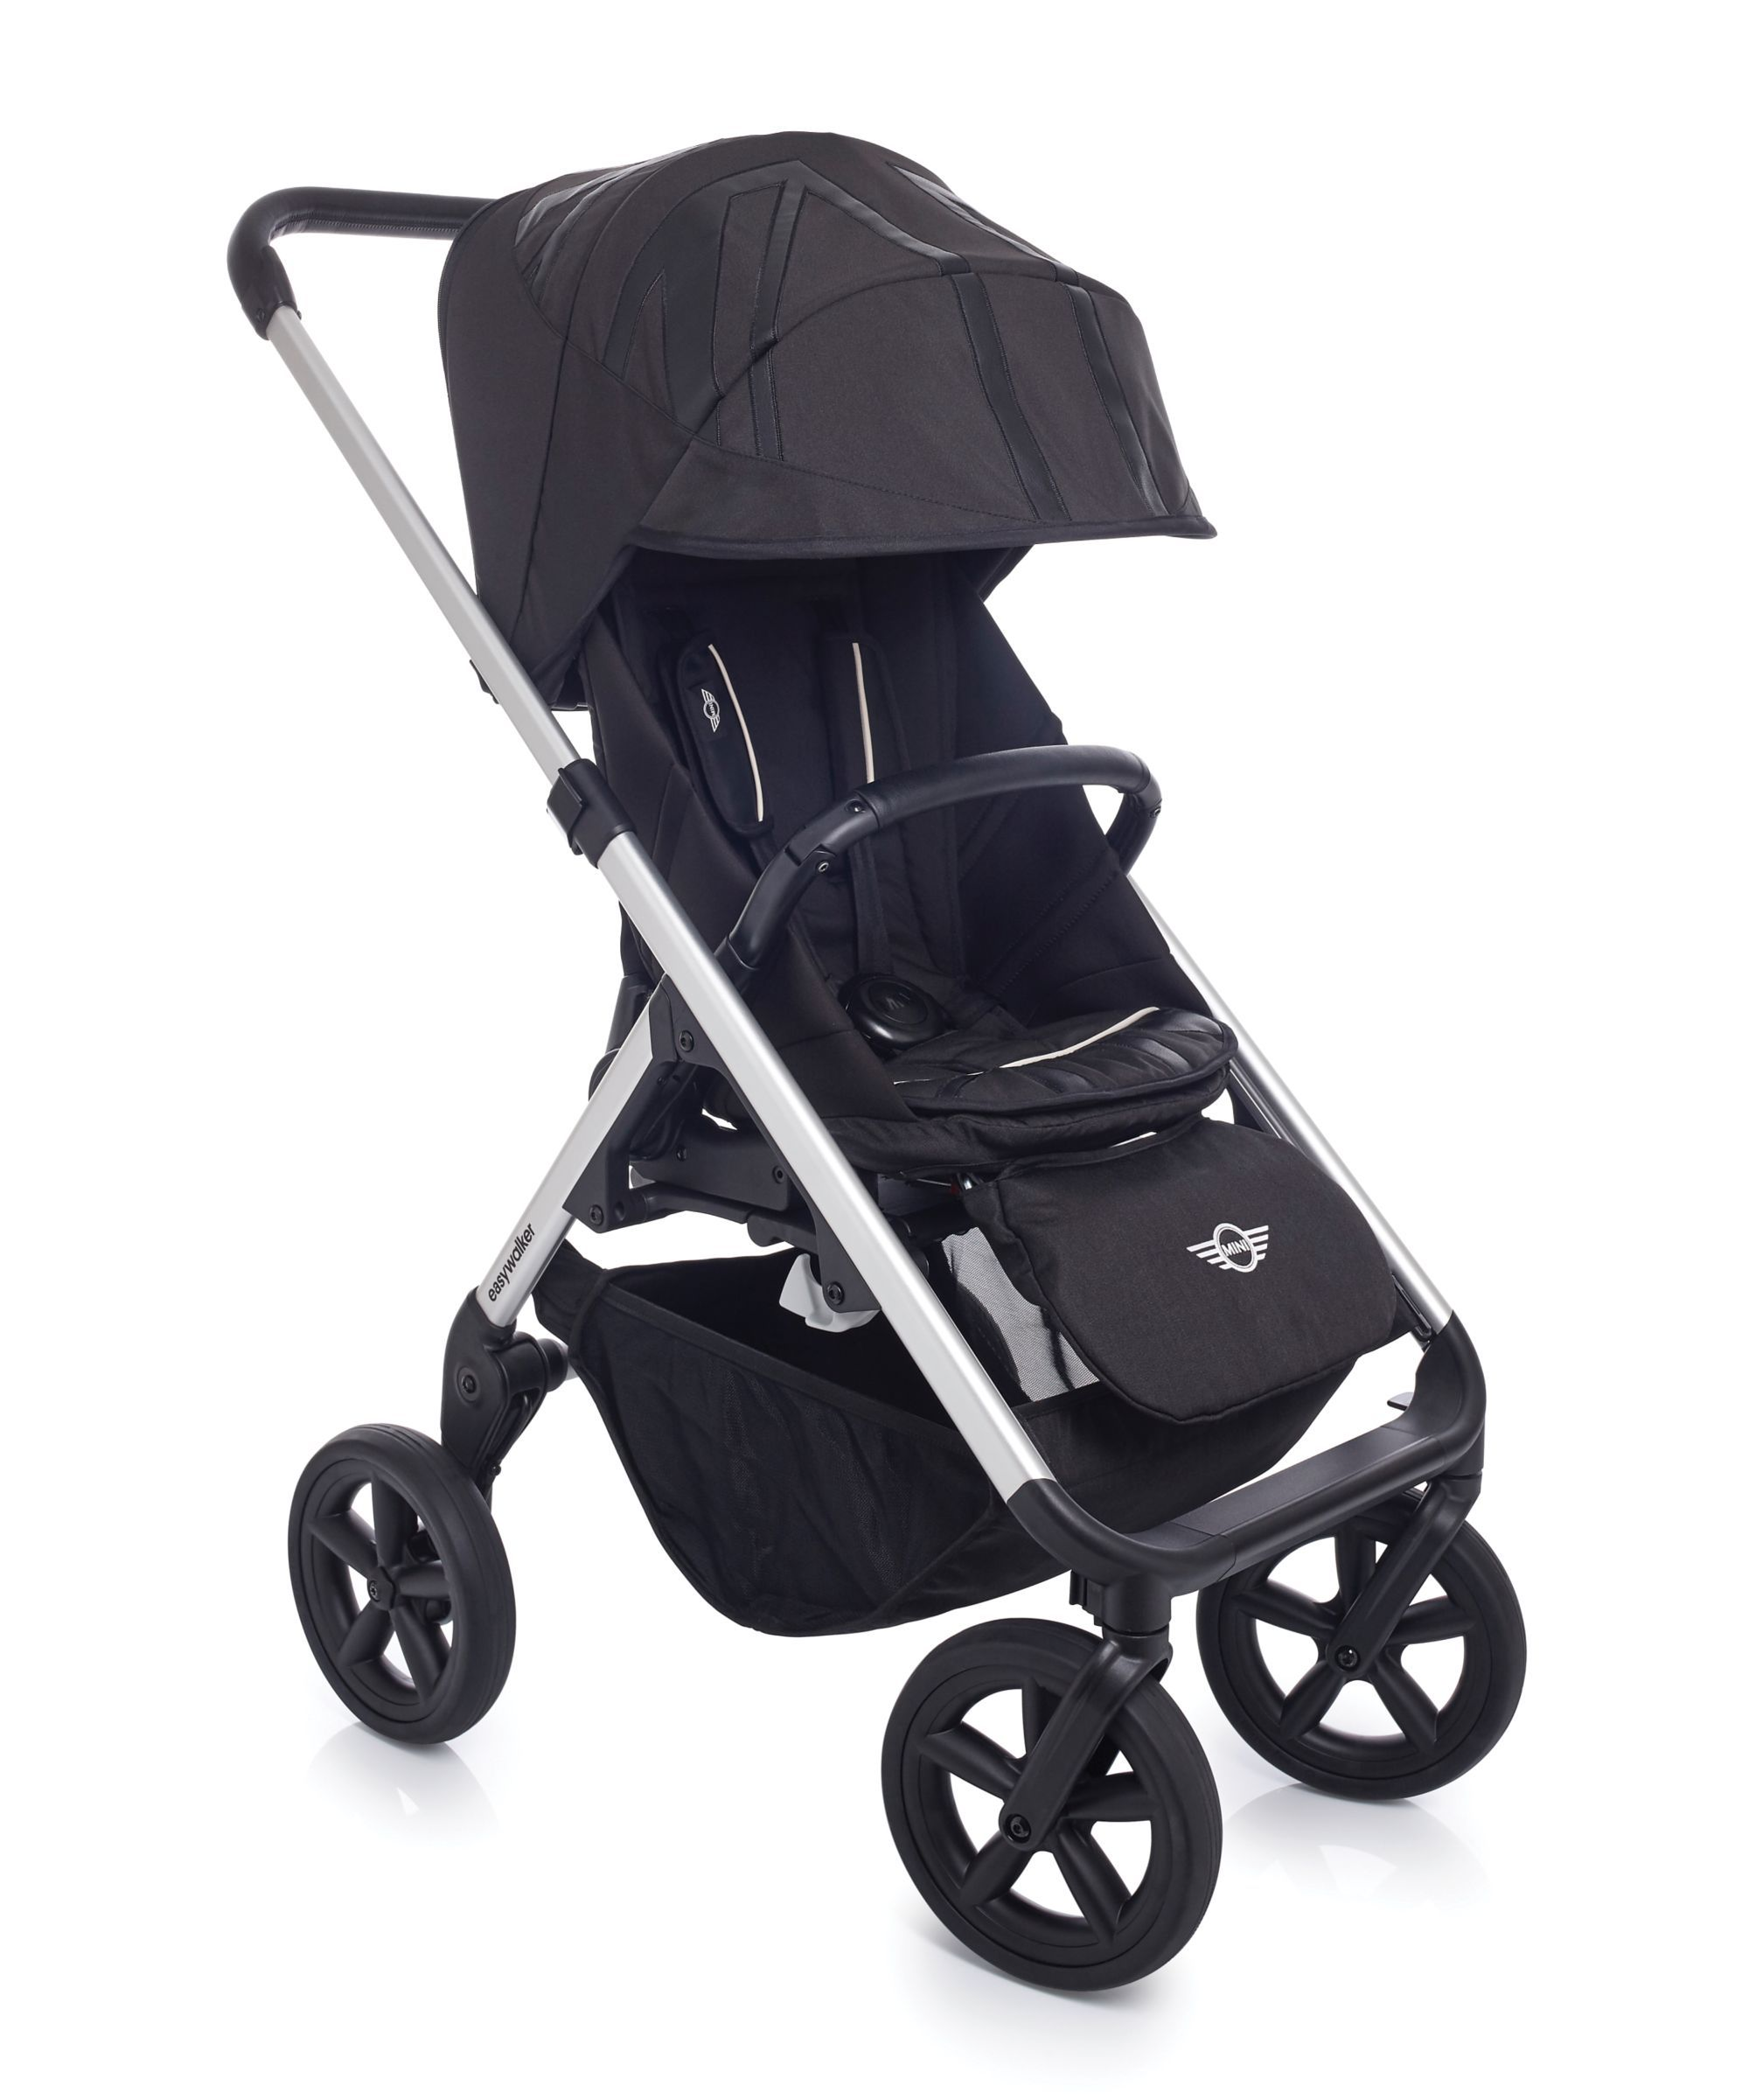 Kinderwagen Easywalker Duo Easywalker Mini Stroller Design Set Black Jack Baby Car